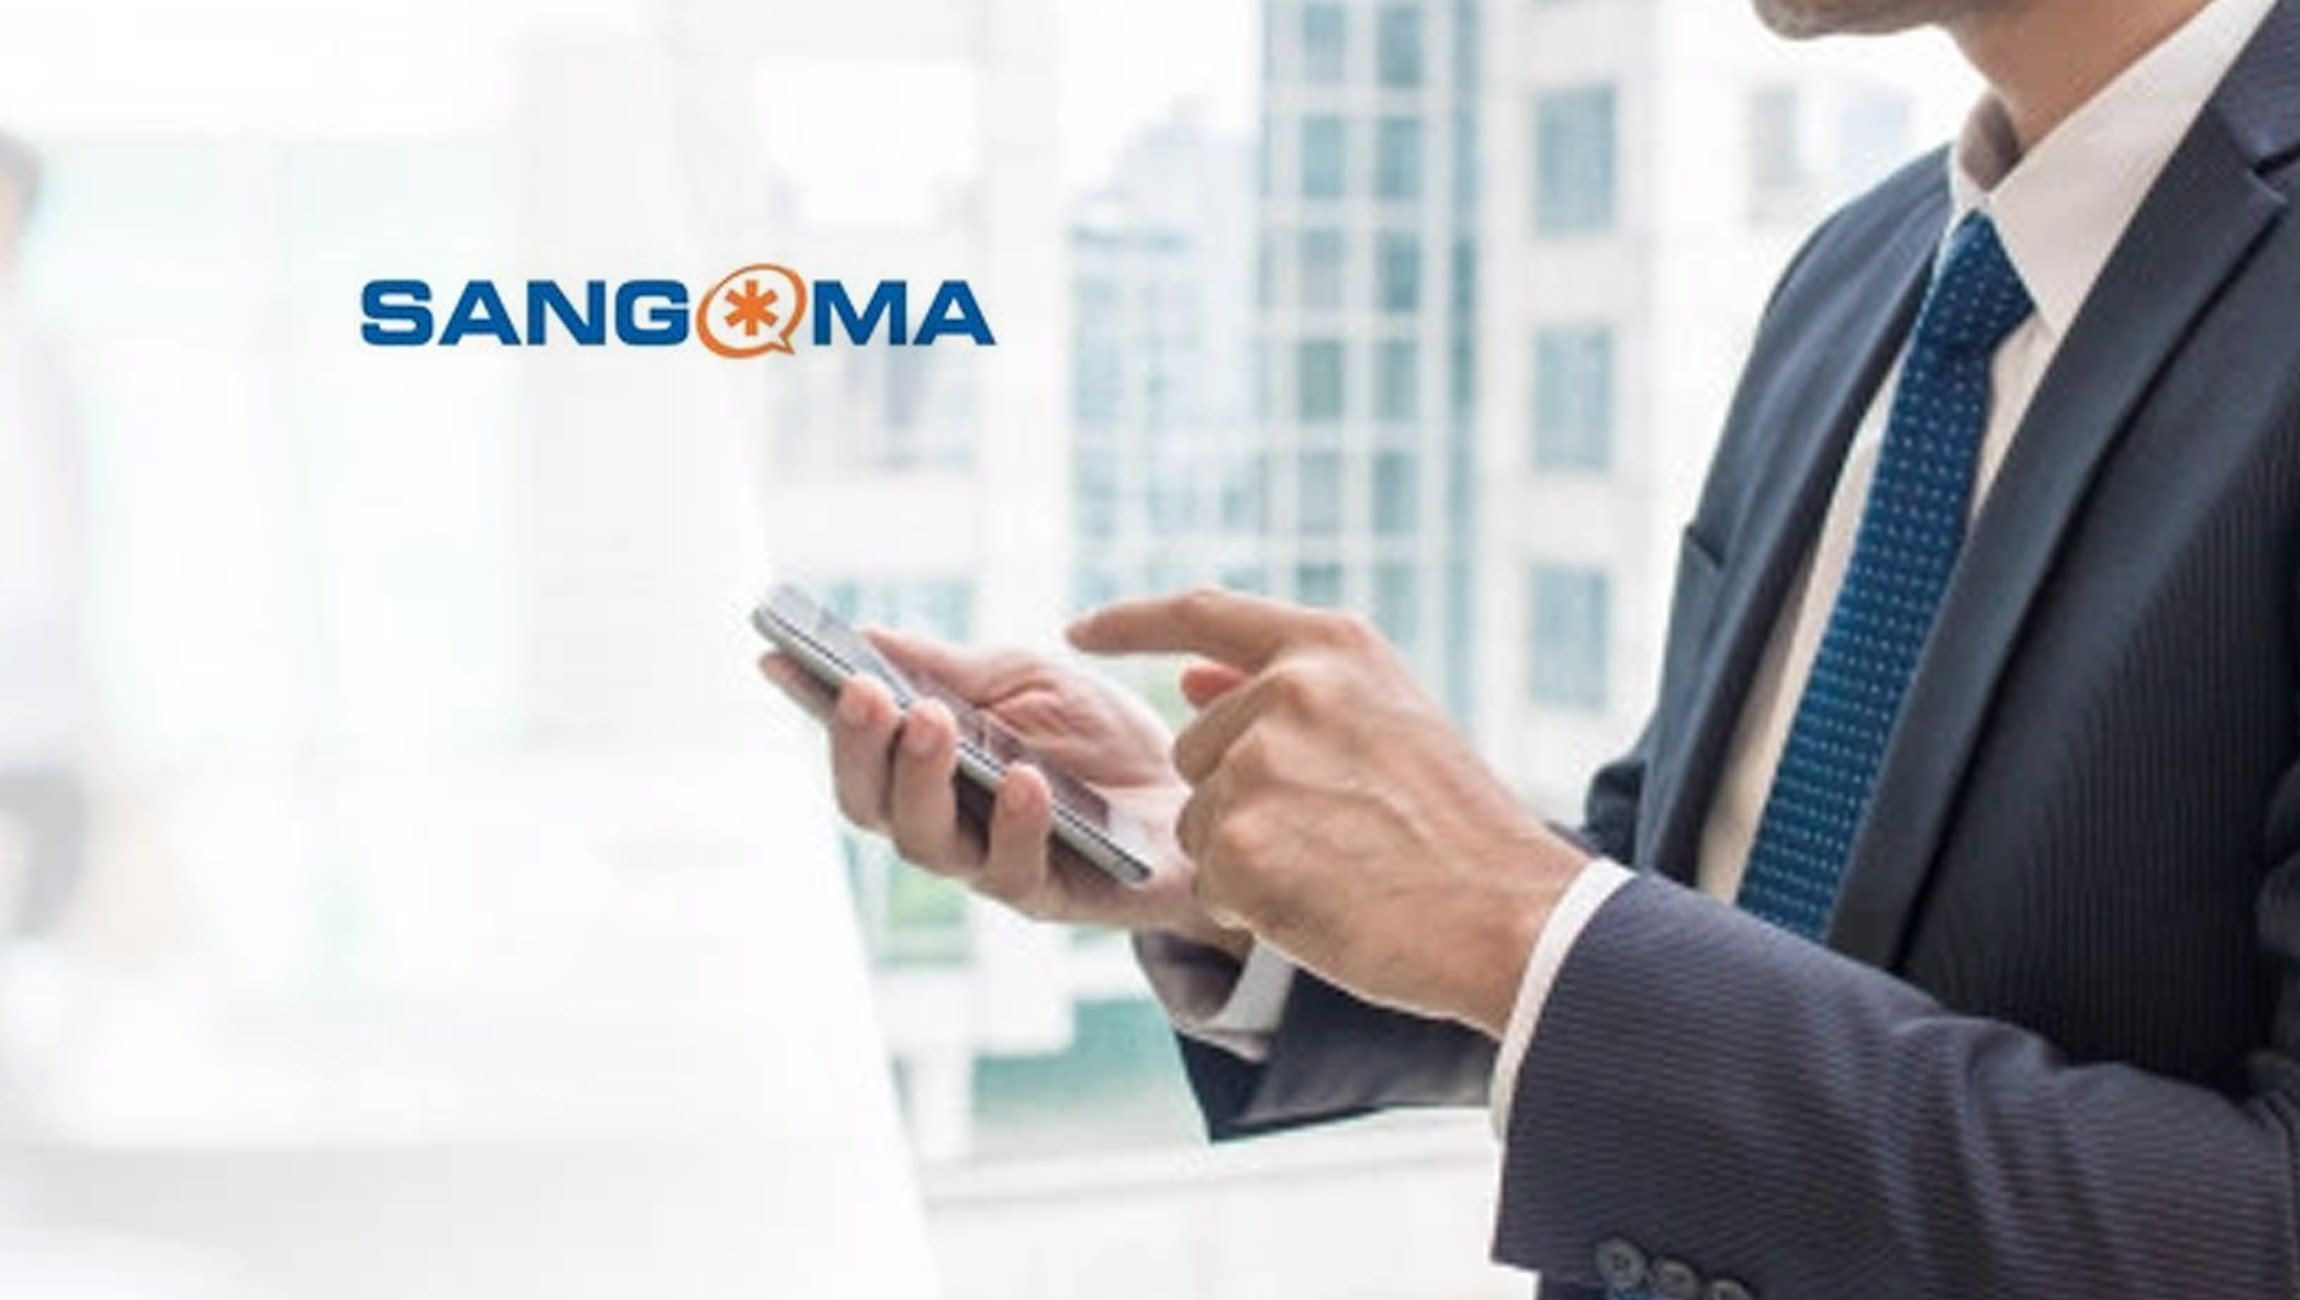 Sangoma Provides a Business Update for Fiscal 2021